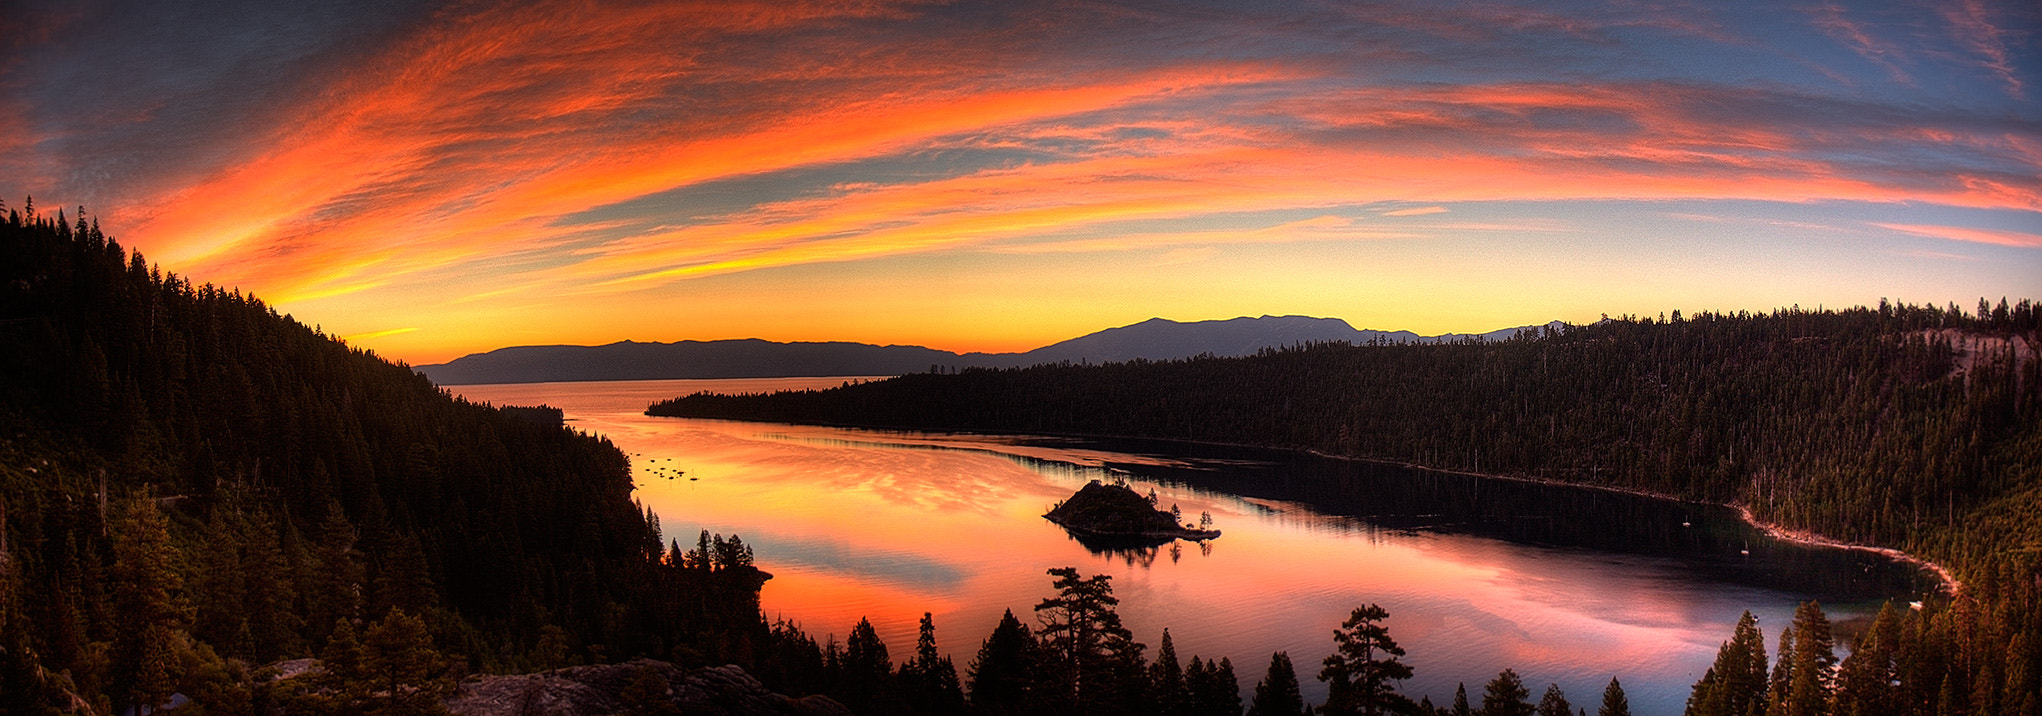 Photograph Tahoe Sunrise by James Hellesen on 500px